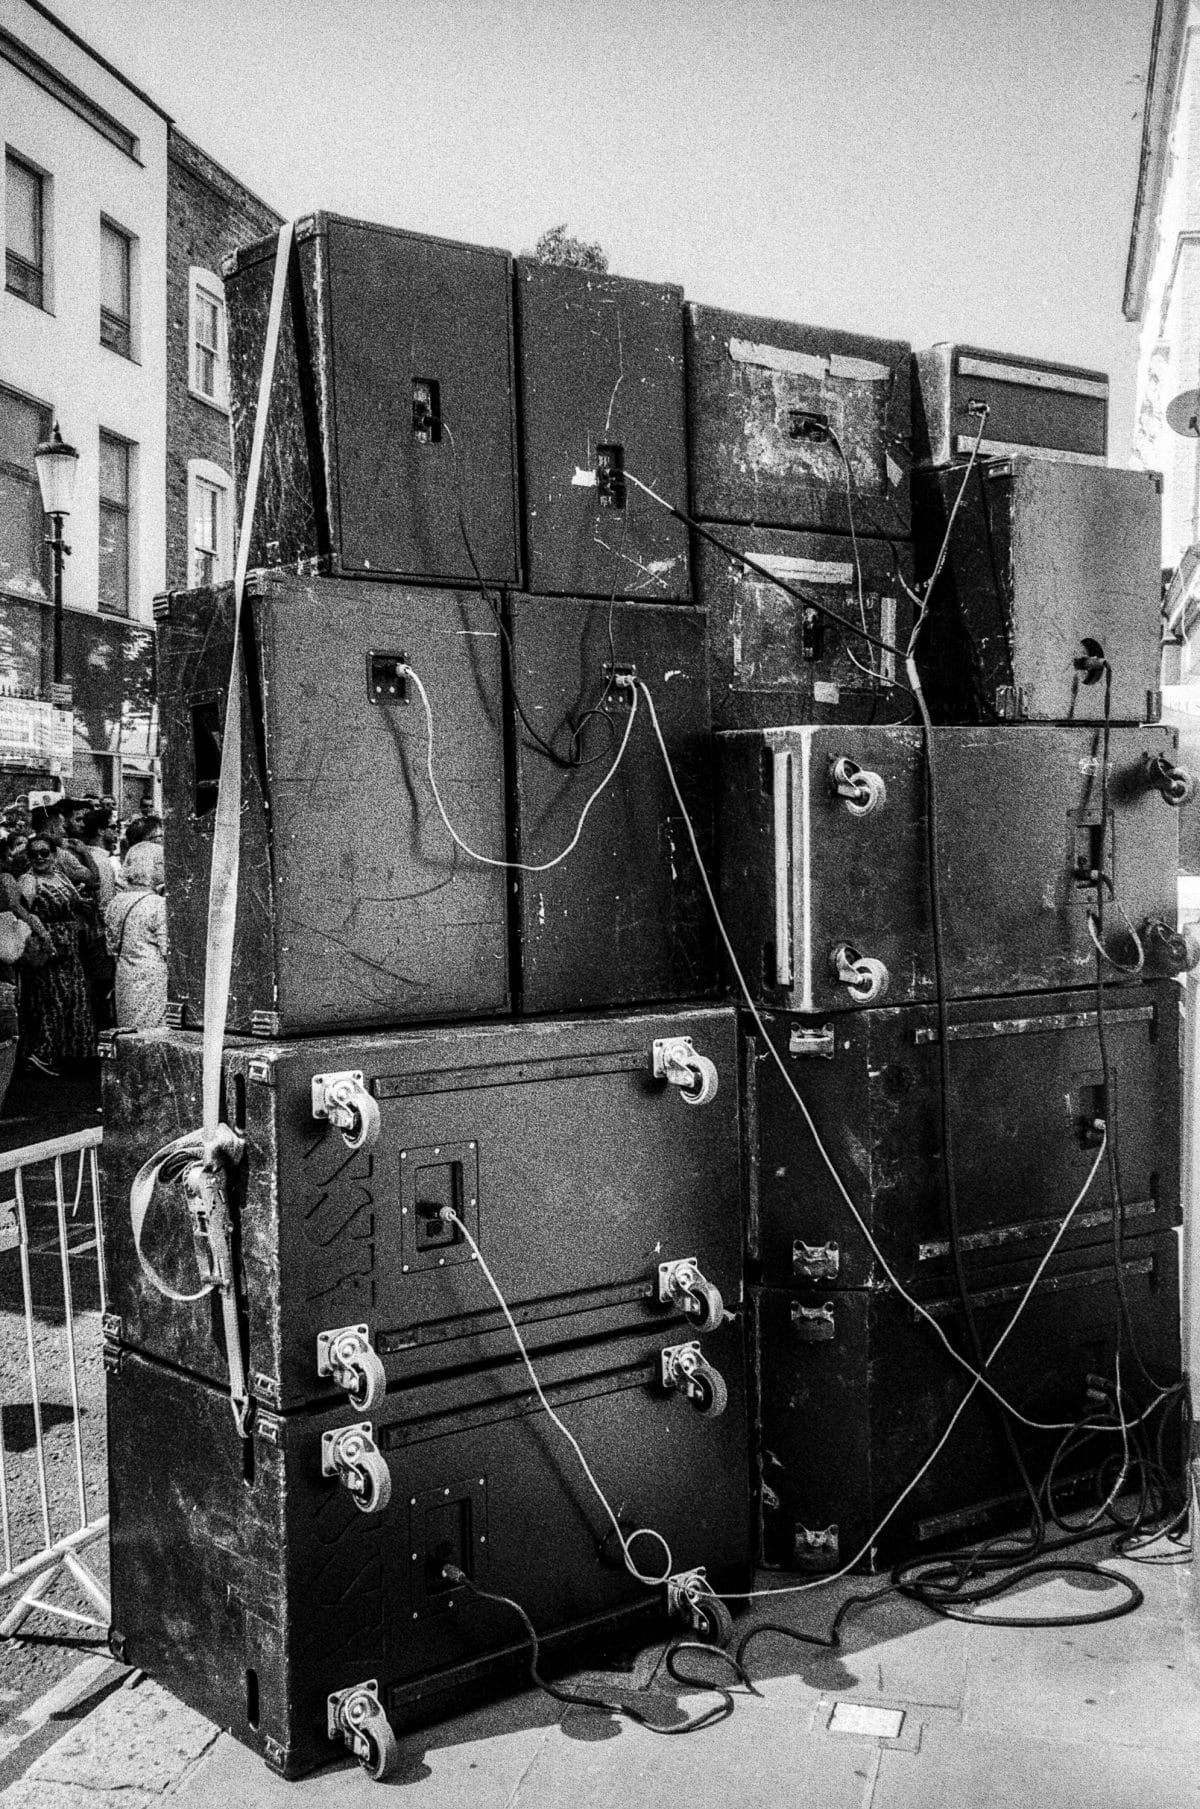 Behind a Sound System at notting hill carnival